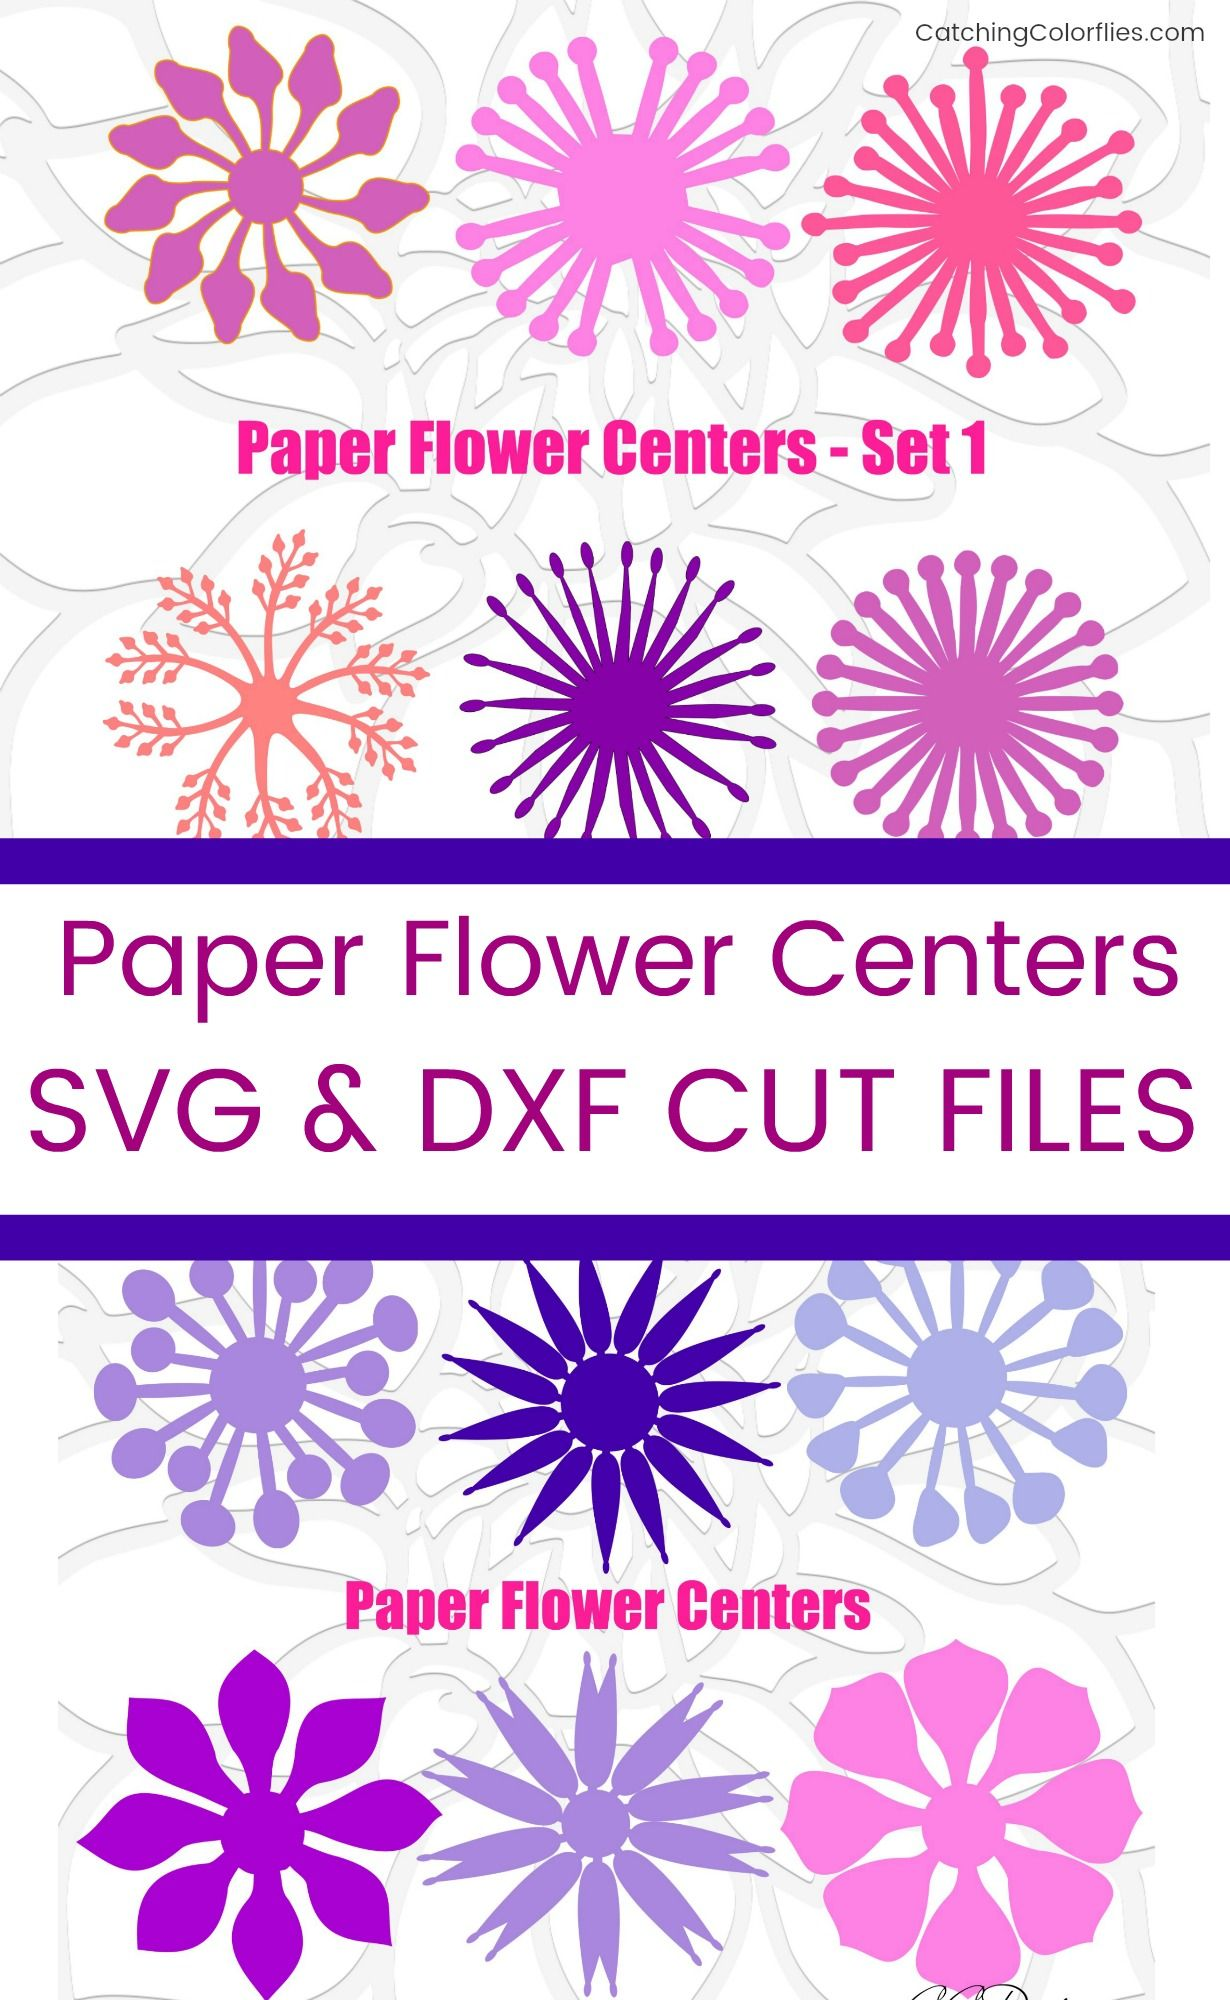 Center Templates For Paper Flowers Flower Center Svg Template